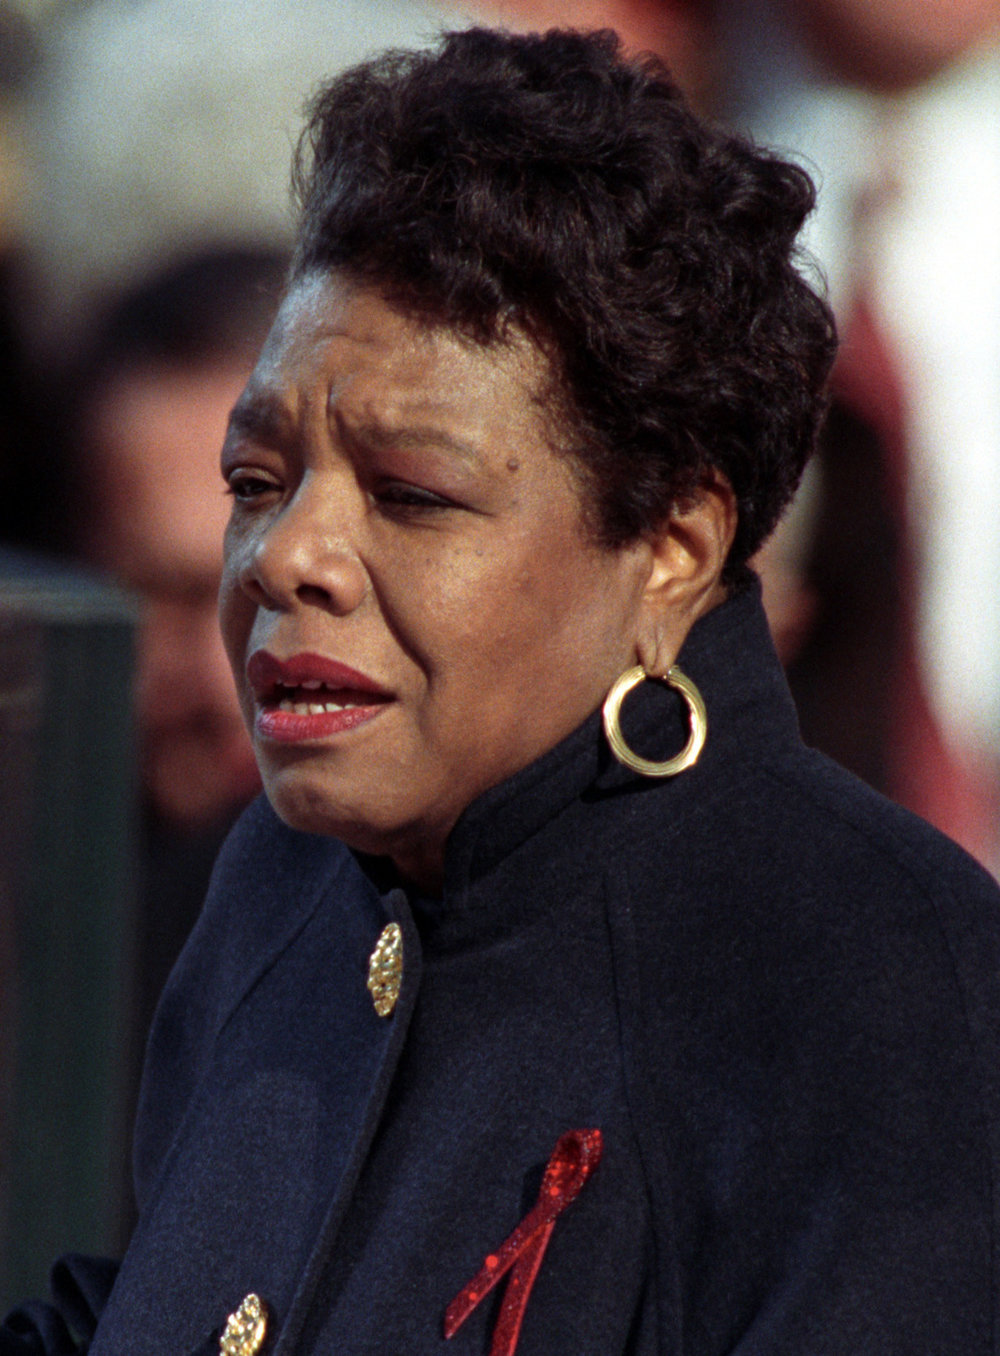 "Angelou reciting her poem ""On the Pulse of Morning"" at President Bill Clinton's inauguration, January 20, 1993 By Clinton Library - William J. Clinton Presidential Library, Public Domain, https://commons.wikimedia.org/w/index.php?curid=67072902"